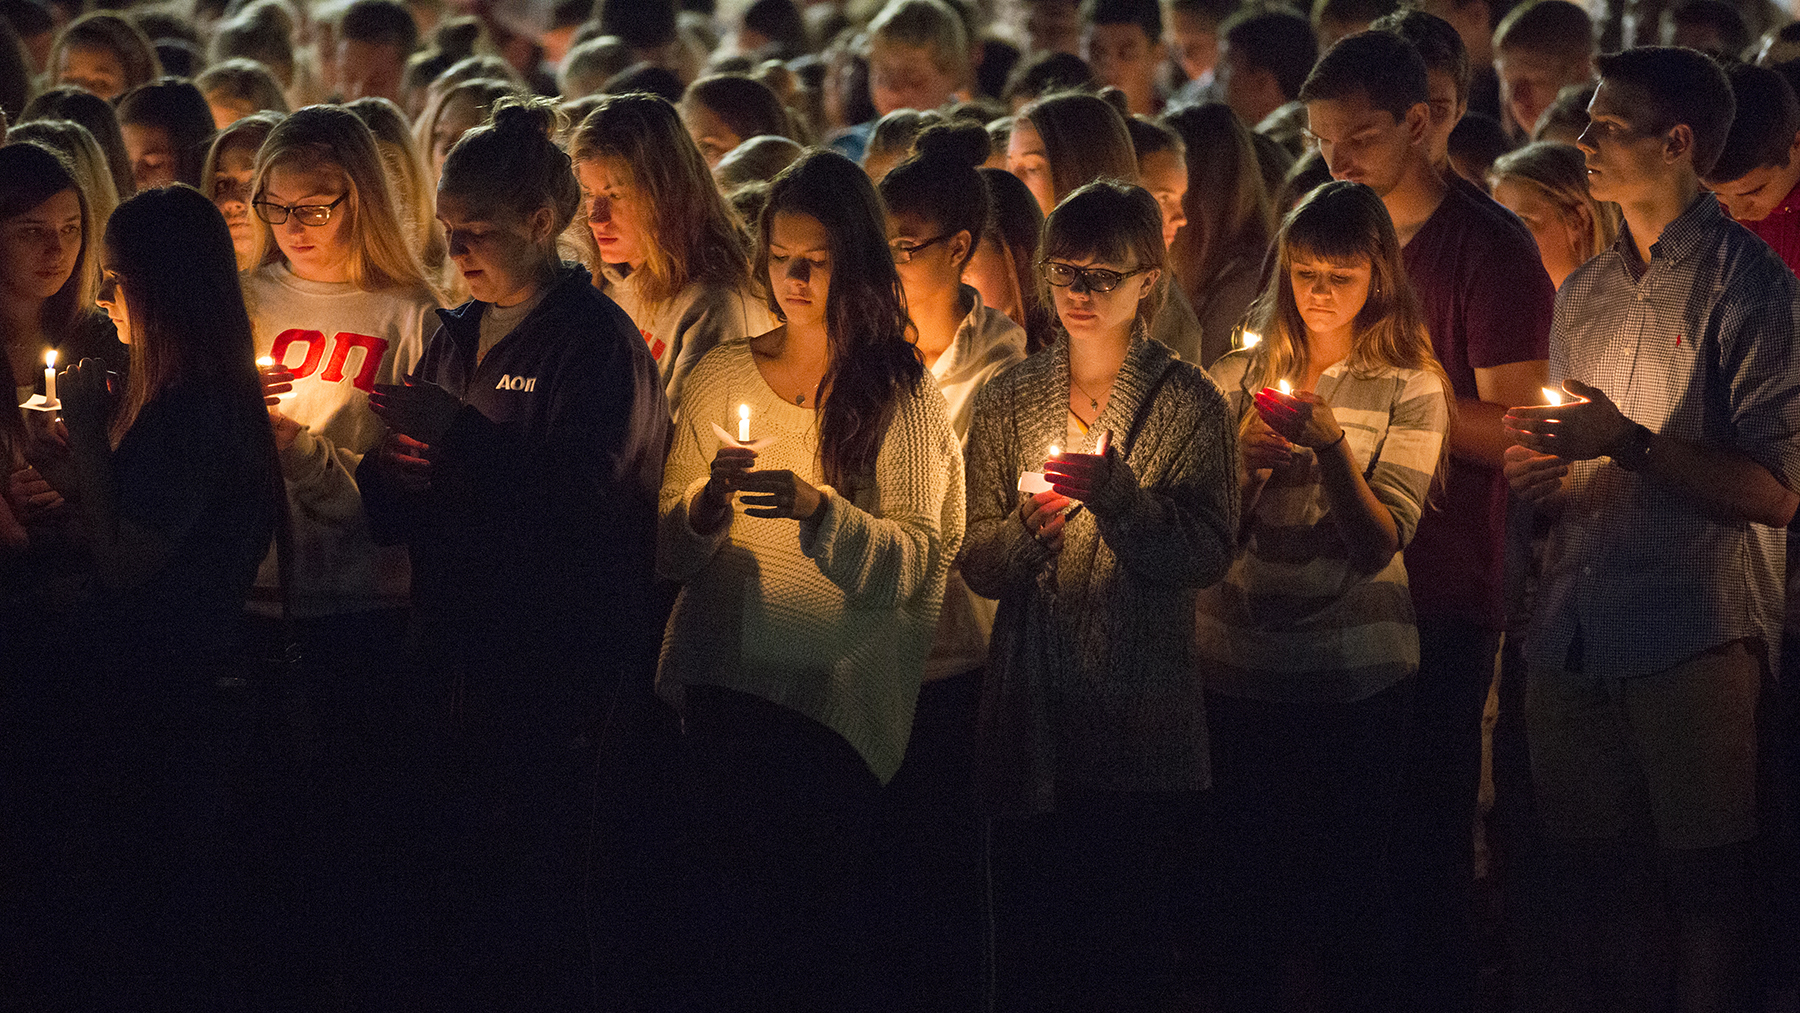 Candlelight Vigil To Support Victims Families Of Orlando